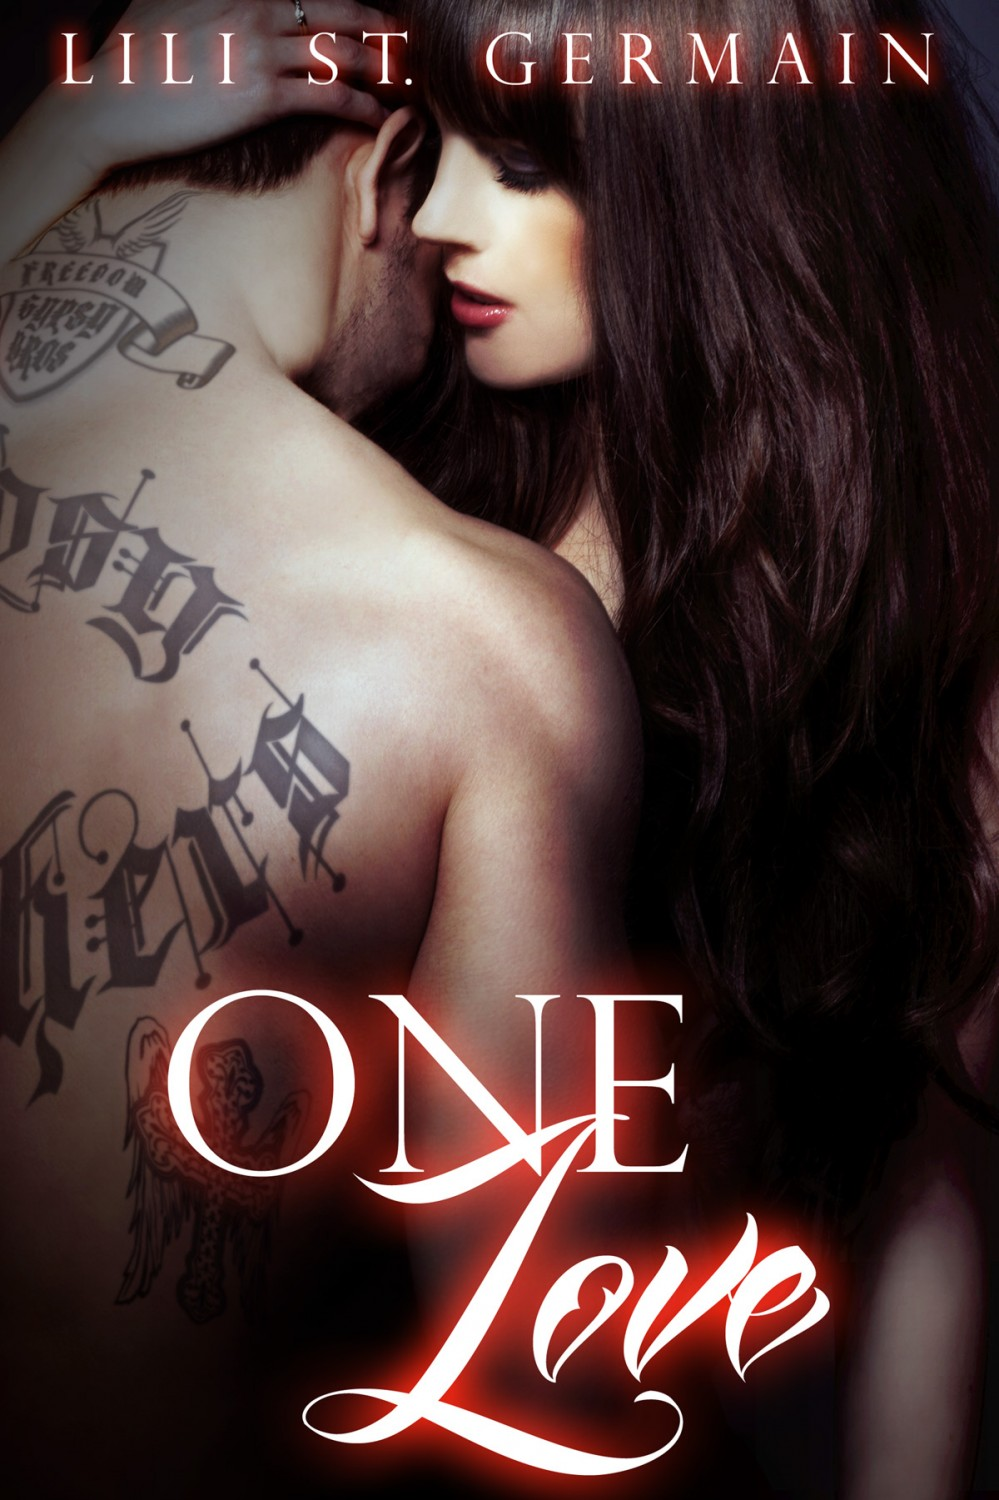 One-Love-Large-999x1500